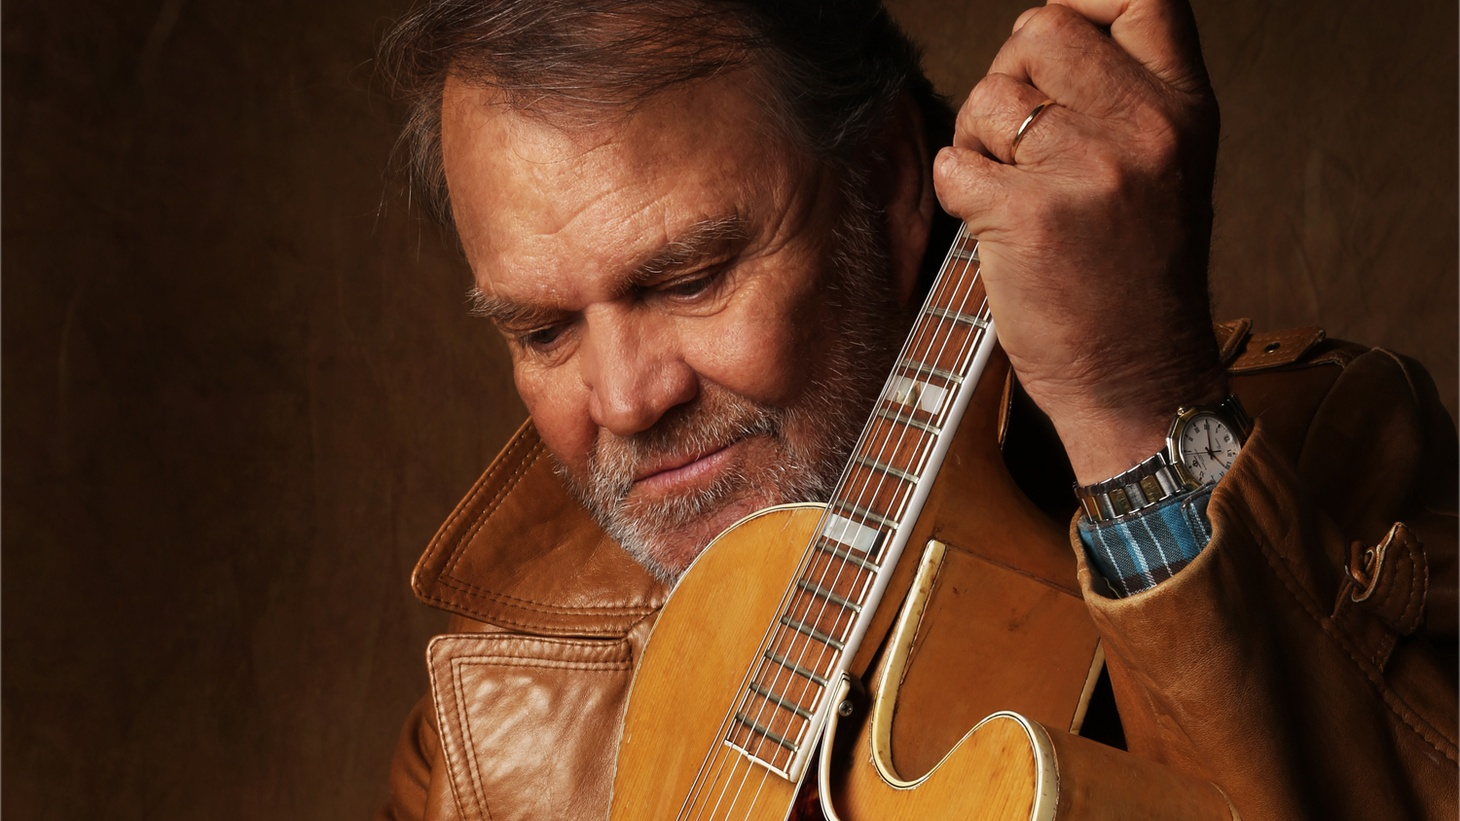 """Glen Campbell was one of 12 children of poor Arkansas sharecroppers. He grew up to release more than 70 albums, win six Grammys, and host his own TV show. Several years ago, Campbell announced he had Alzheimer's Disease. Since then, his family and friends got him into the studio to record one final album, """"Adios."""""""